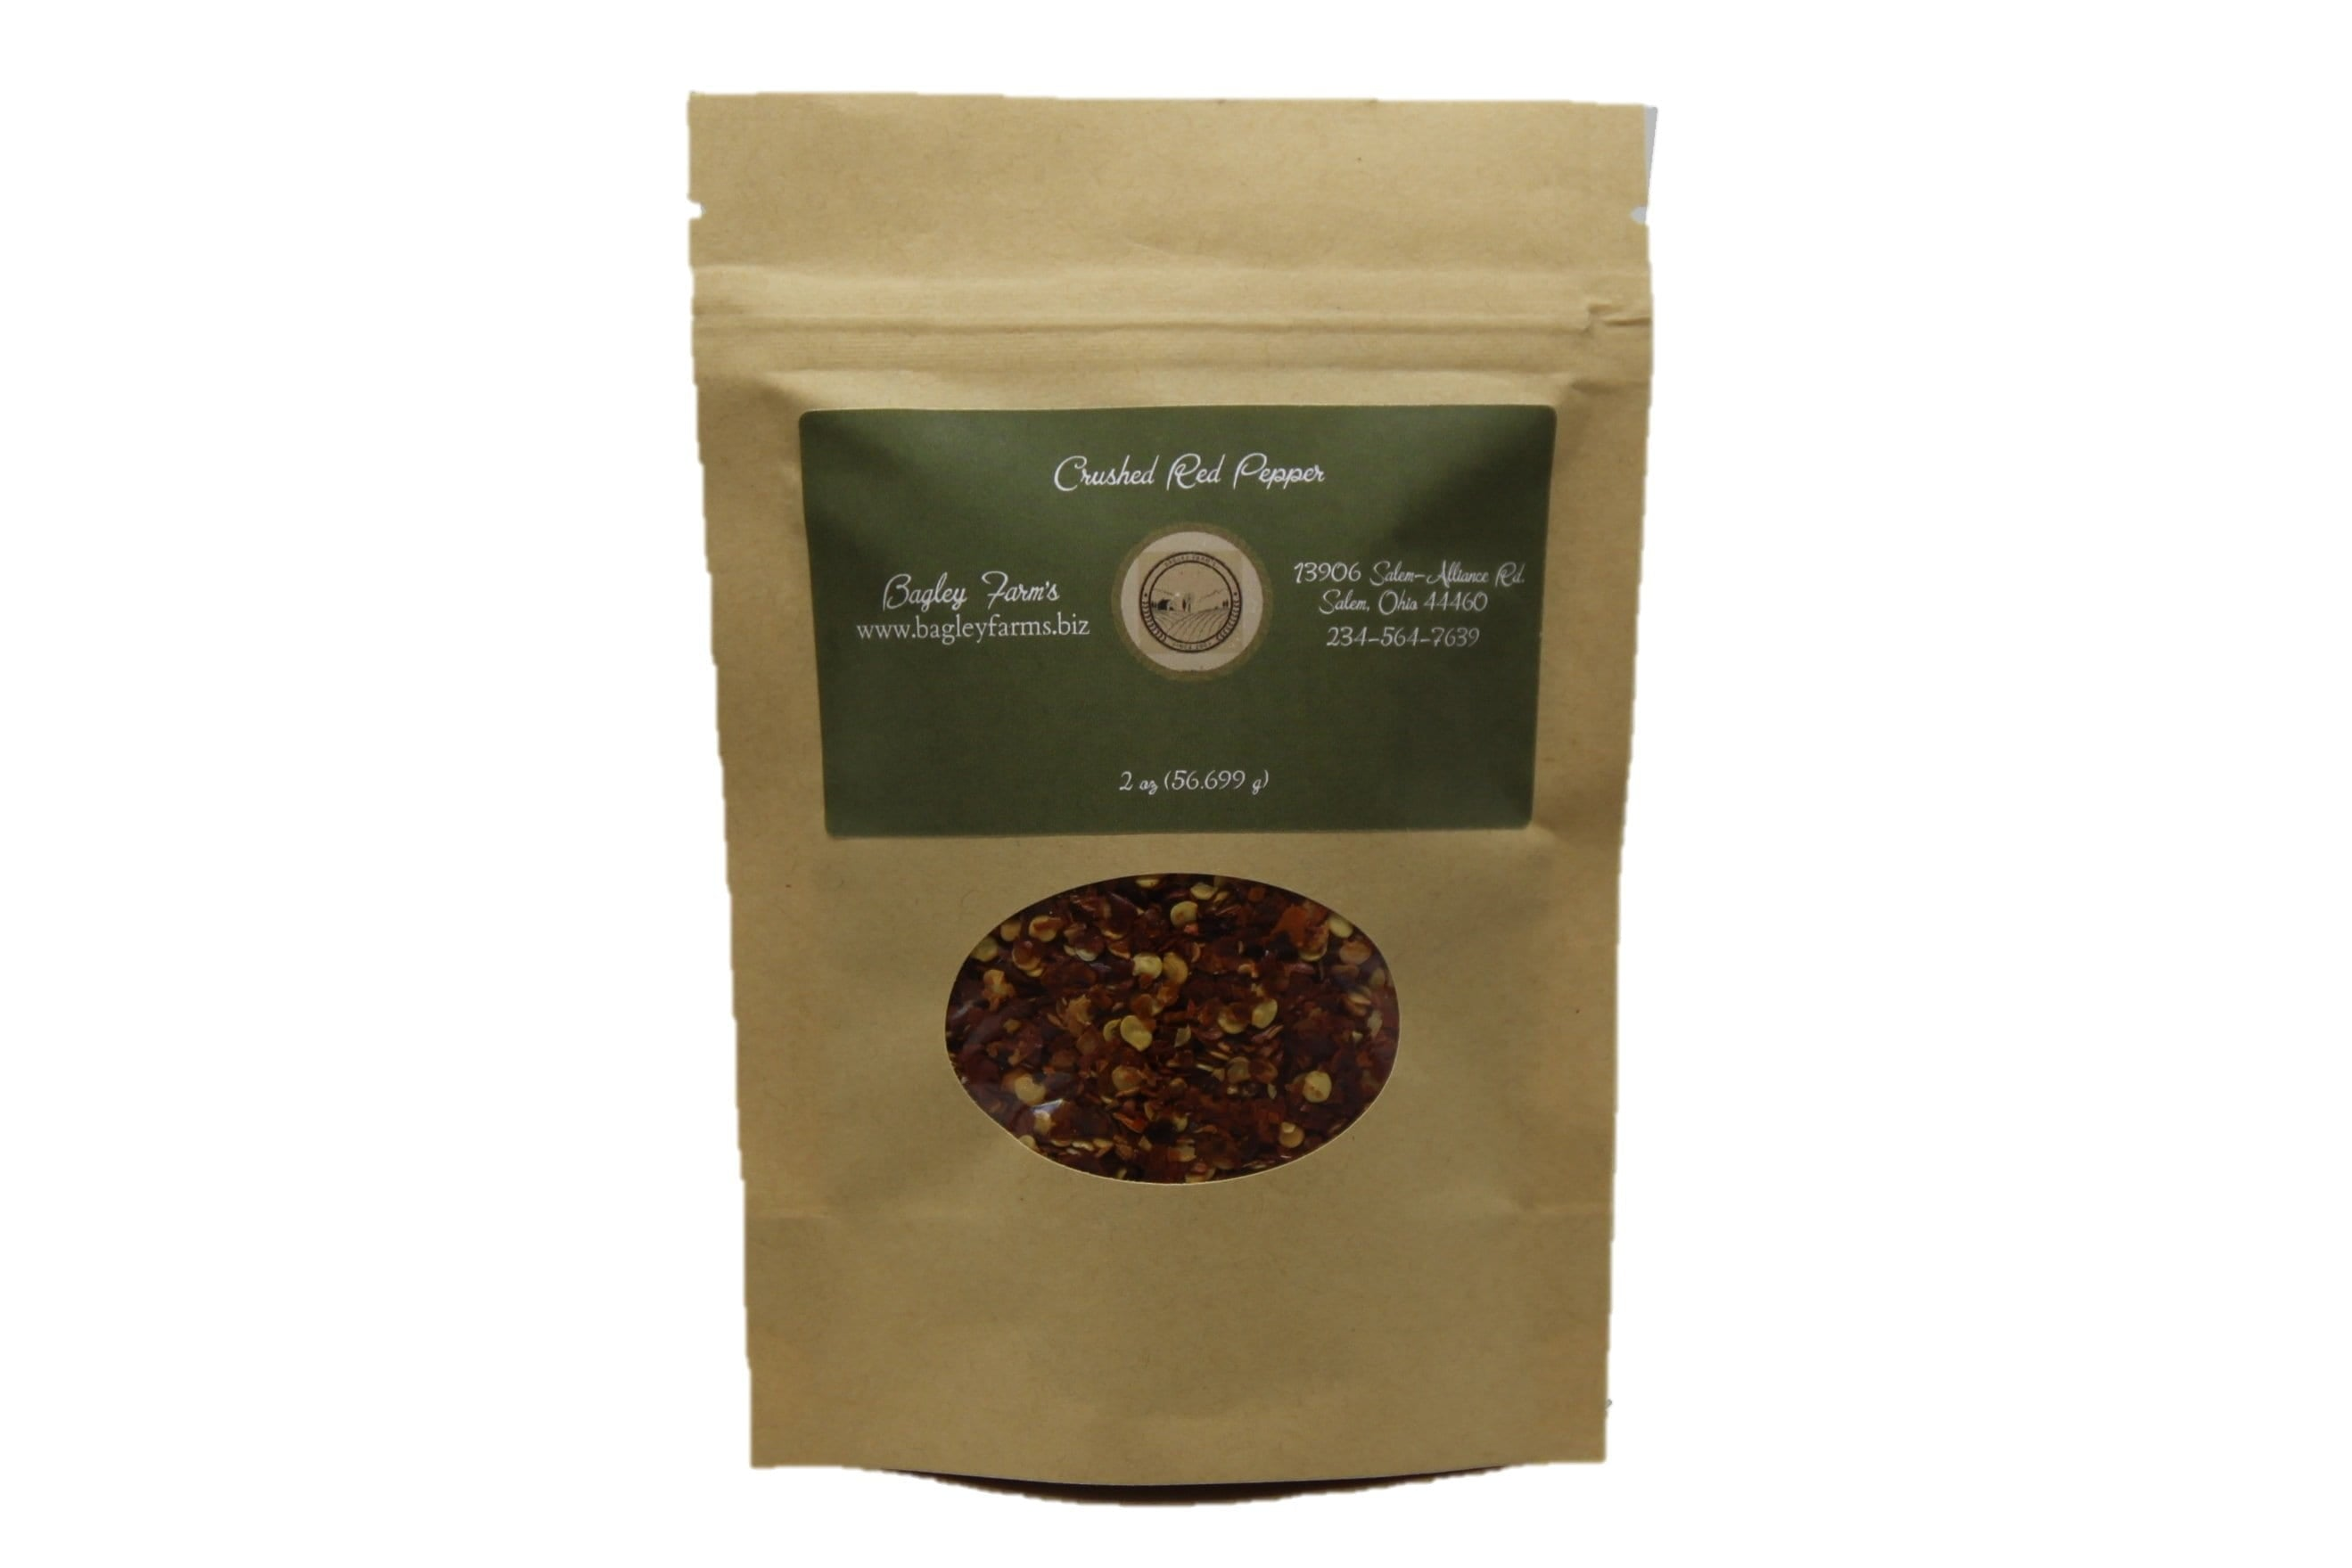 Pepper, Crushed Red Spice and Seasoning 2 oz